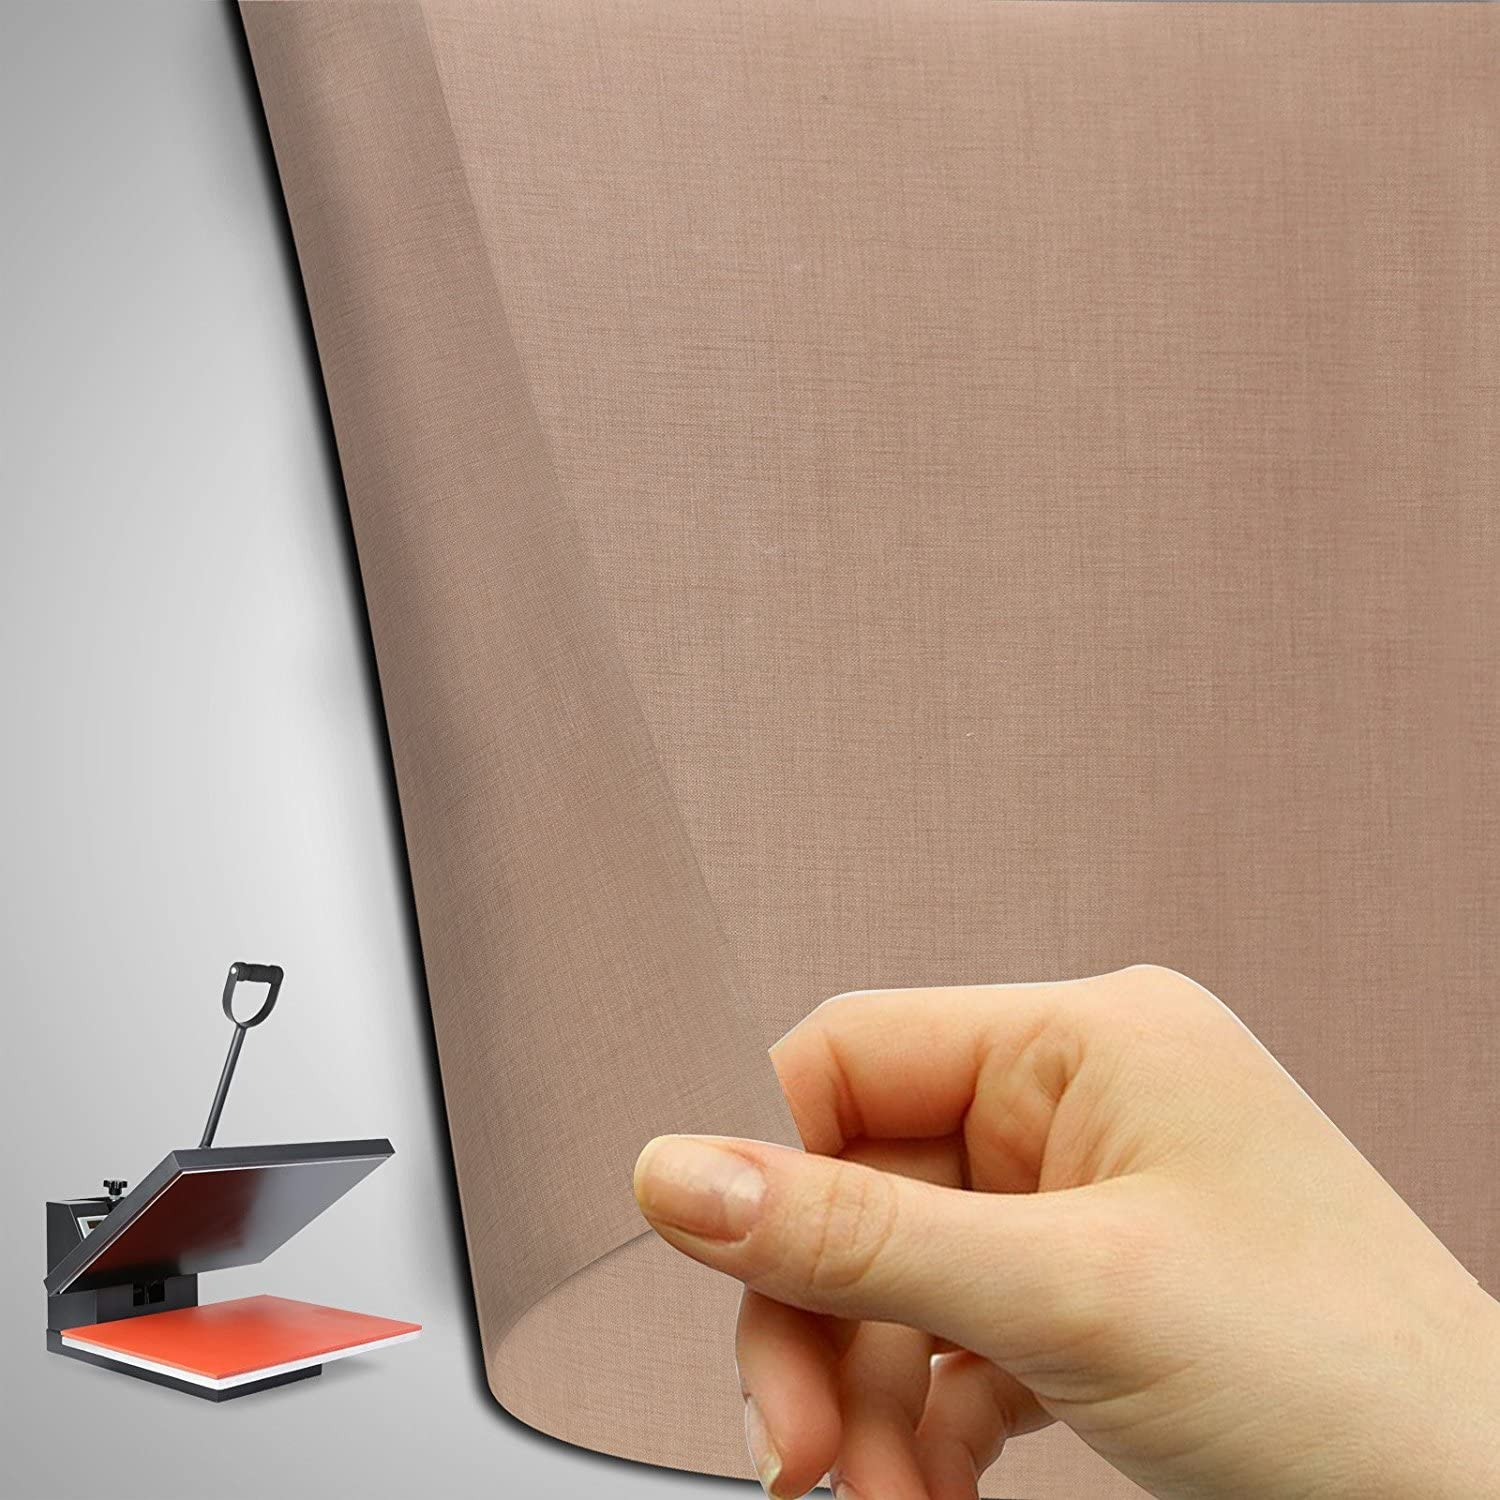 Reusable 39 x 5 Yard Teflon Fabric Sheet Roll 5Mil Thickness for Sublimation Printing Heat Resistant Craft Mat